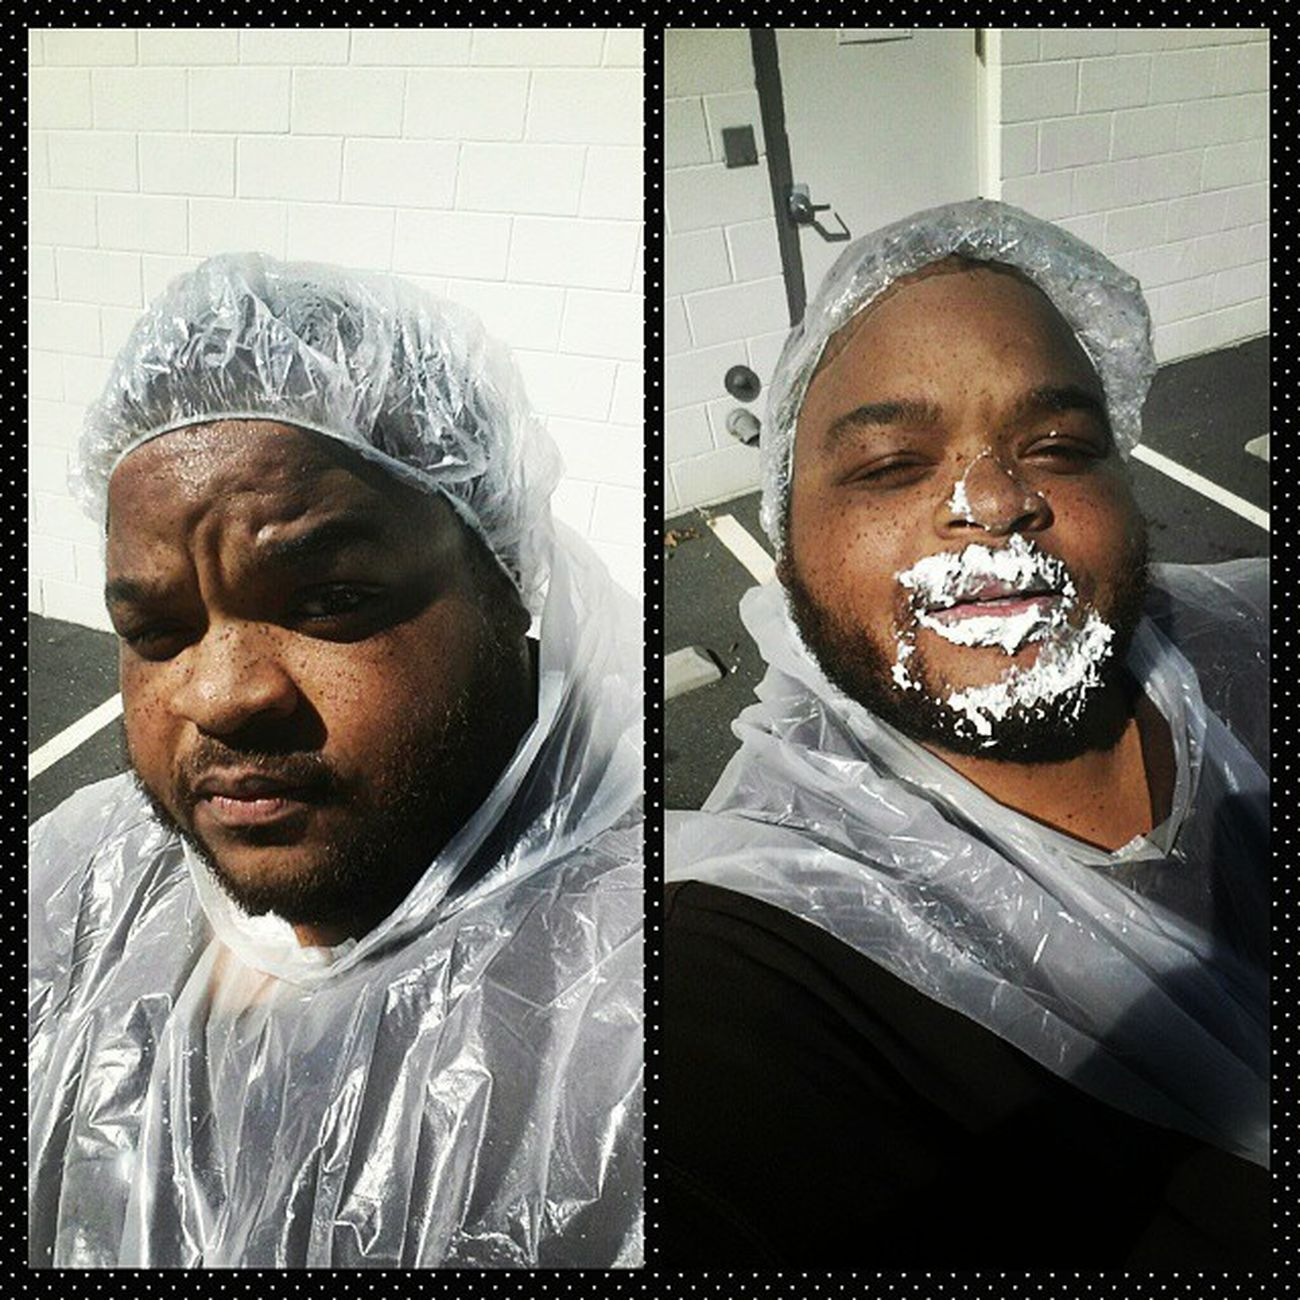 At Work Workselfie Pieintheface raising money for ACS Americancancersociety Santaclaus Gotsomethingonmyface Whippedcream